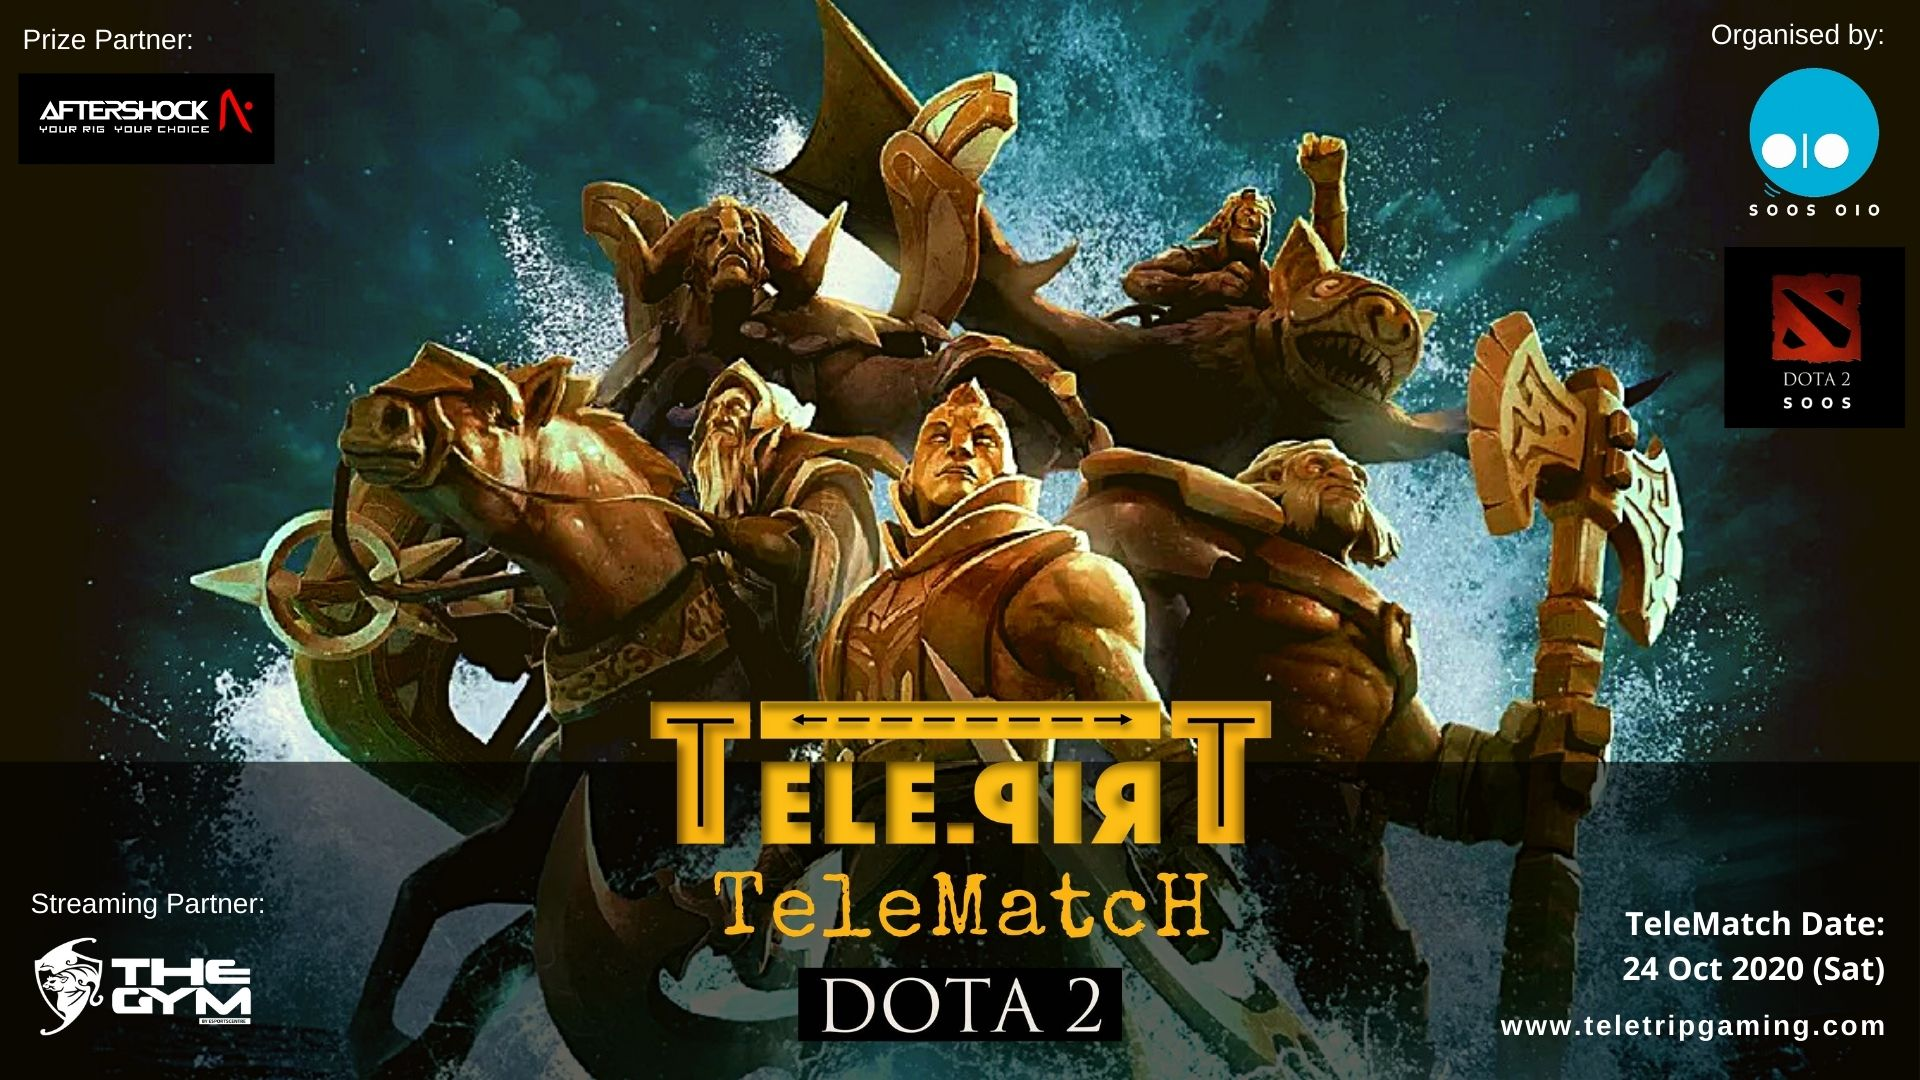 TeleMatch DOTA 24 Oct 2020